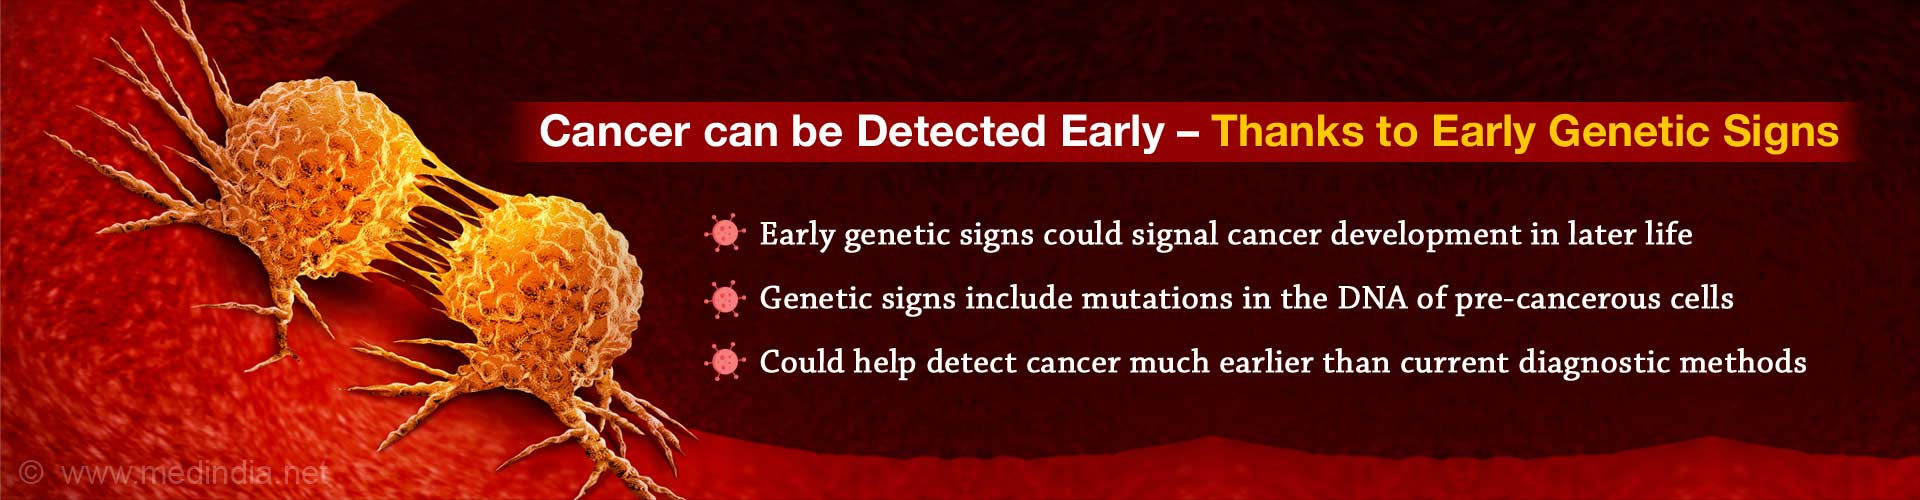 Early Genetic Signs can Detect Cancer Earlier and Faster